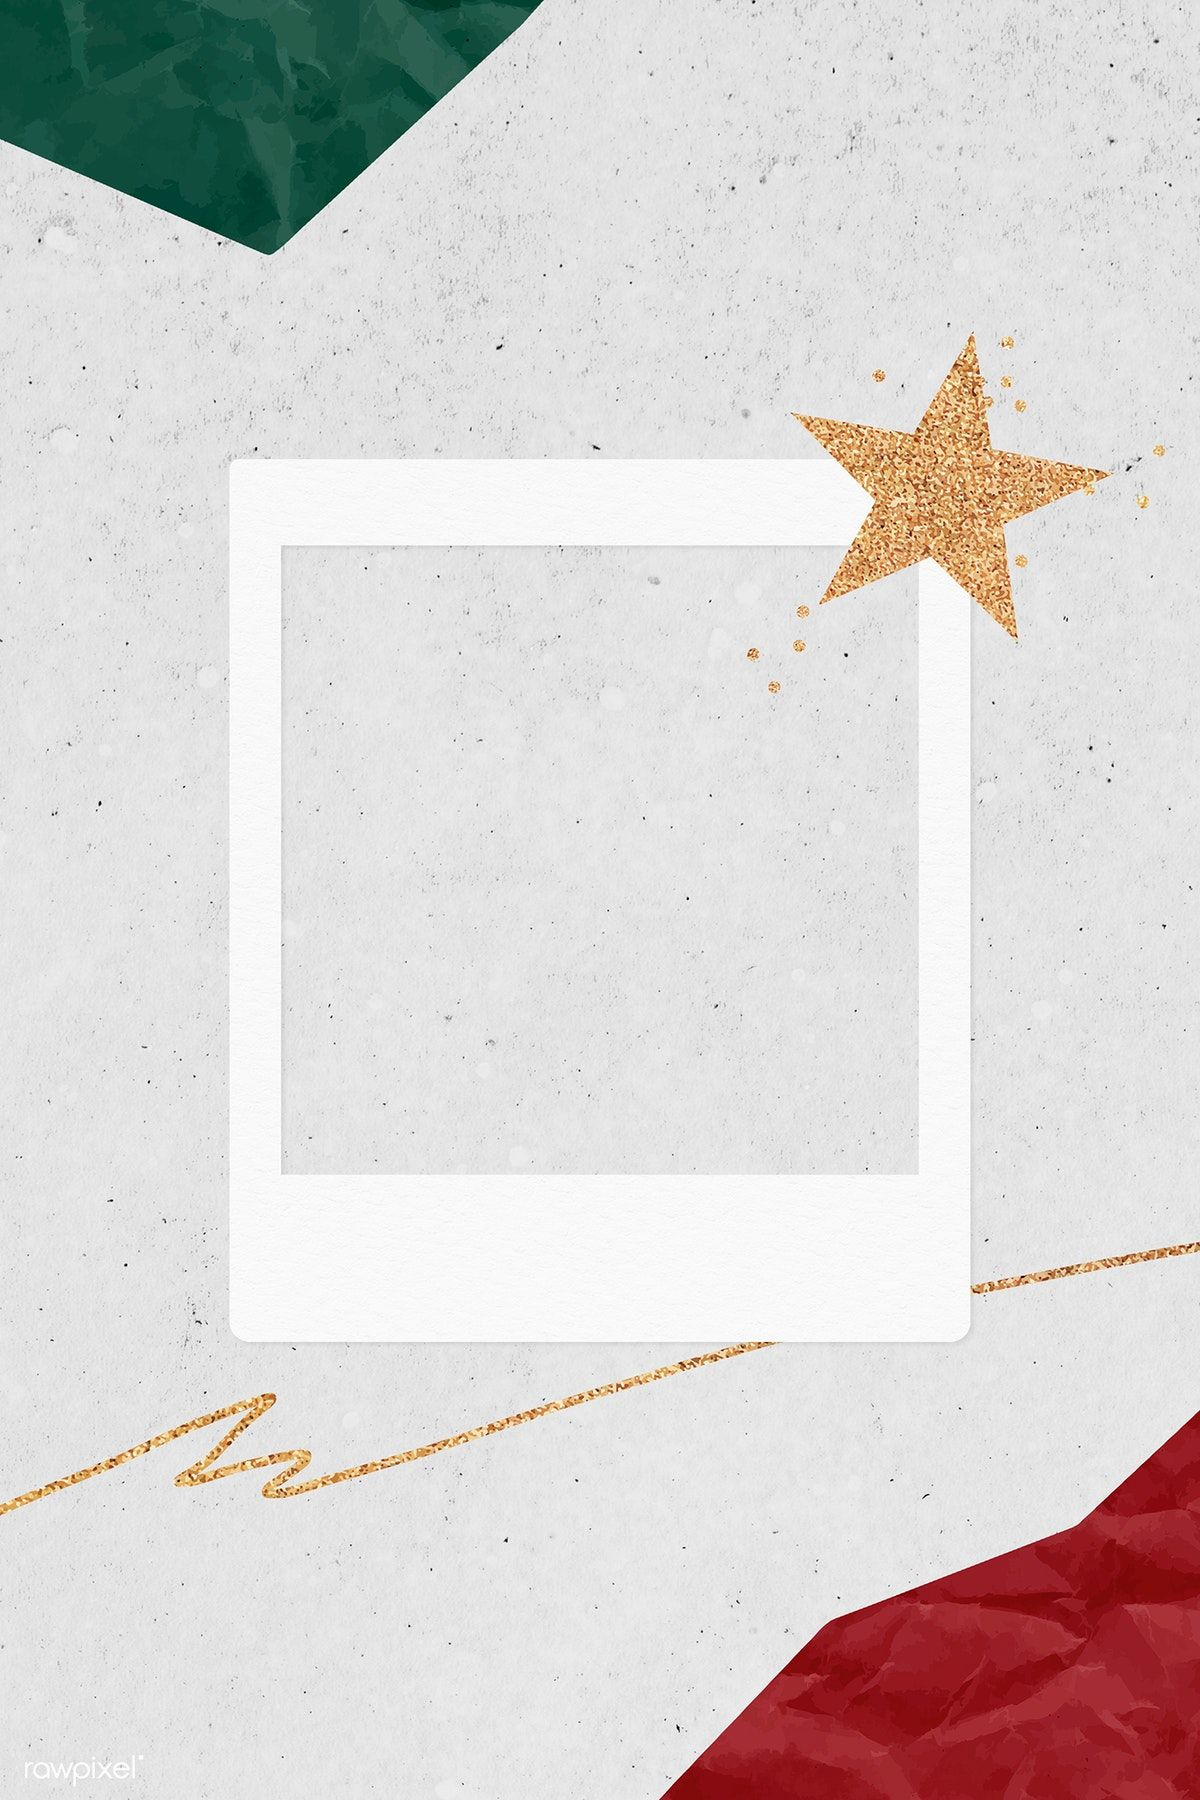 Download premium illustration of Christmas decorated blank instant photo